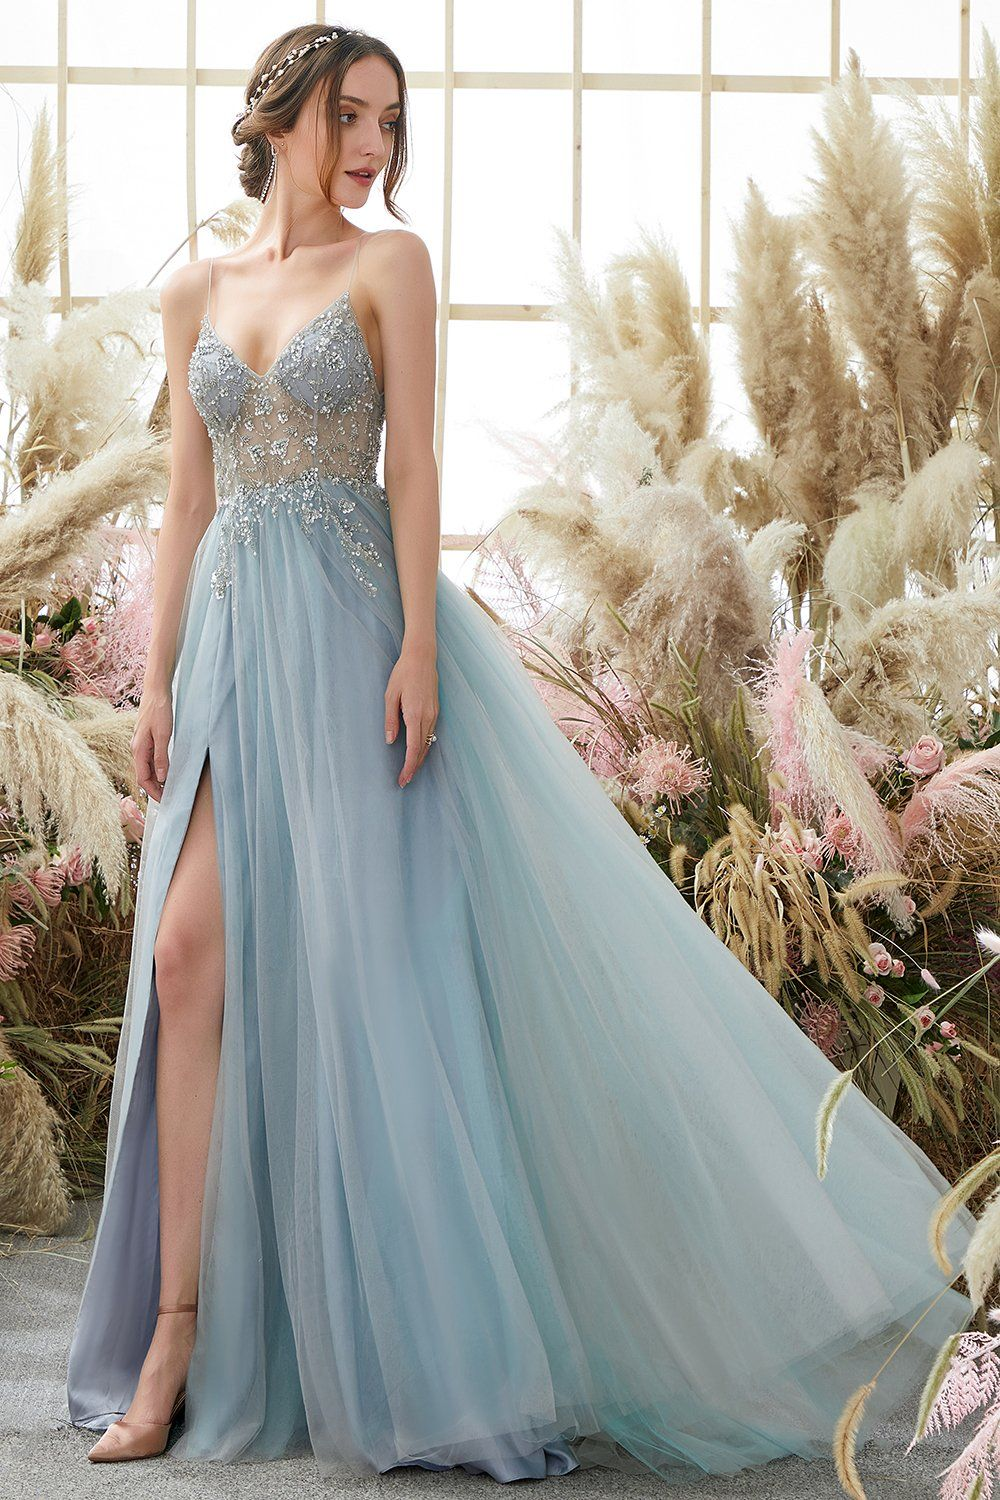 Light blue beaded prom dress with slit and tulle train